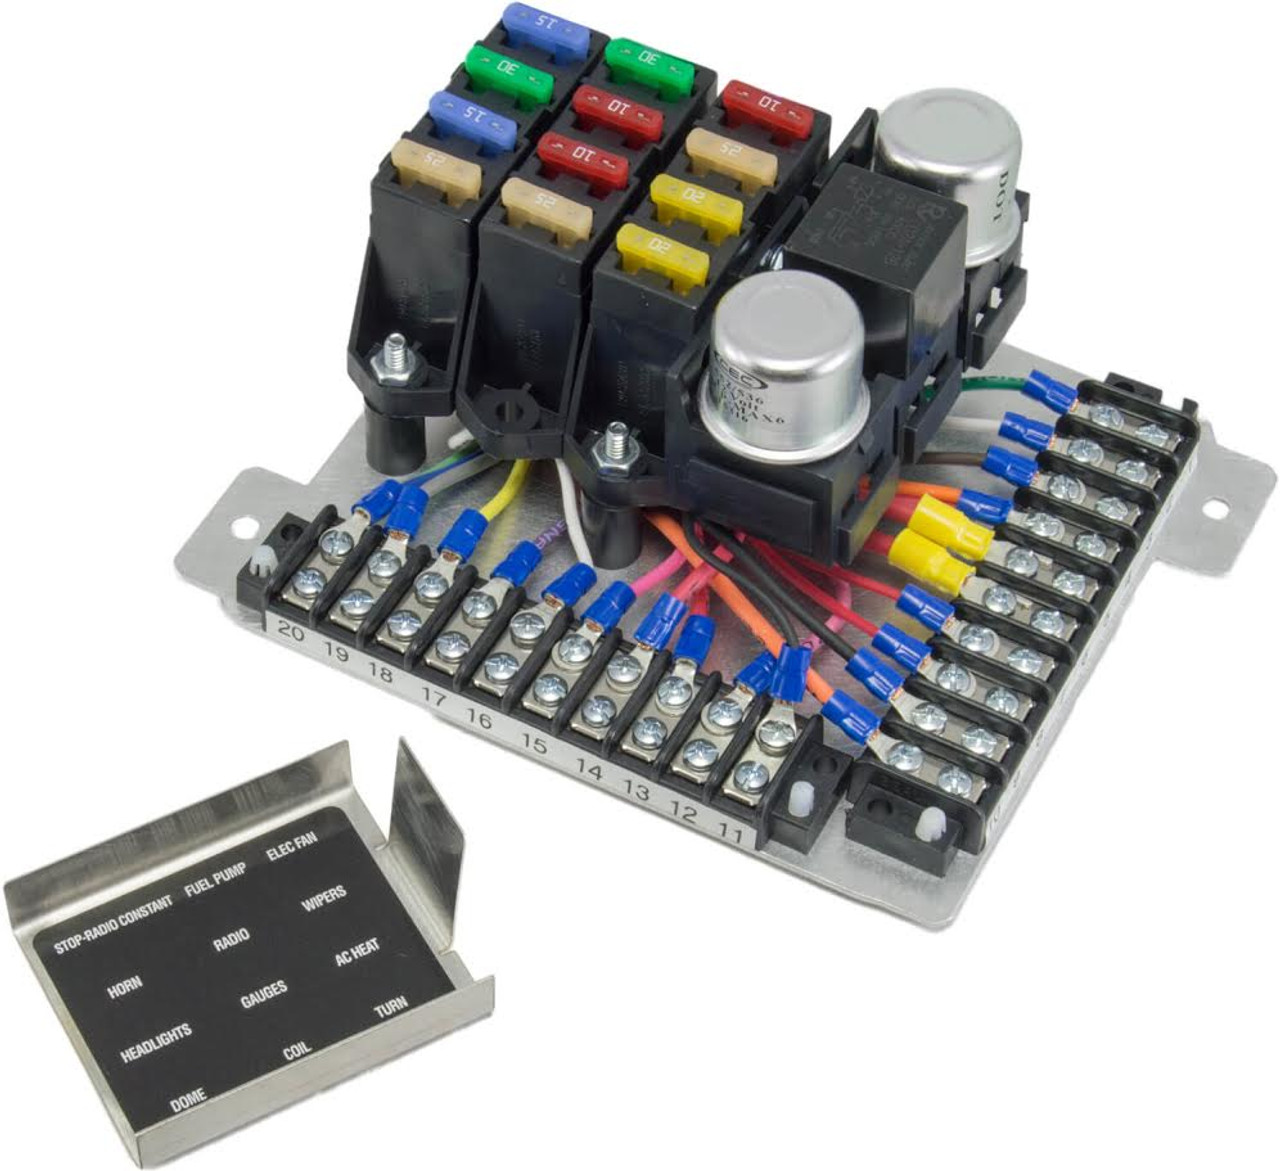 tr 1400 replacement fuse block kwikwire com electrify your ride rh kwikwire com